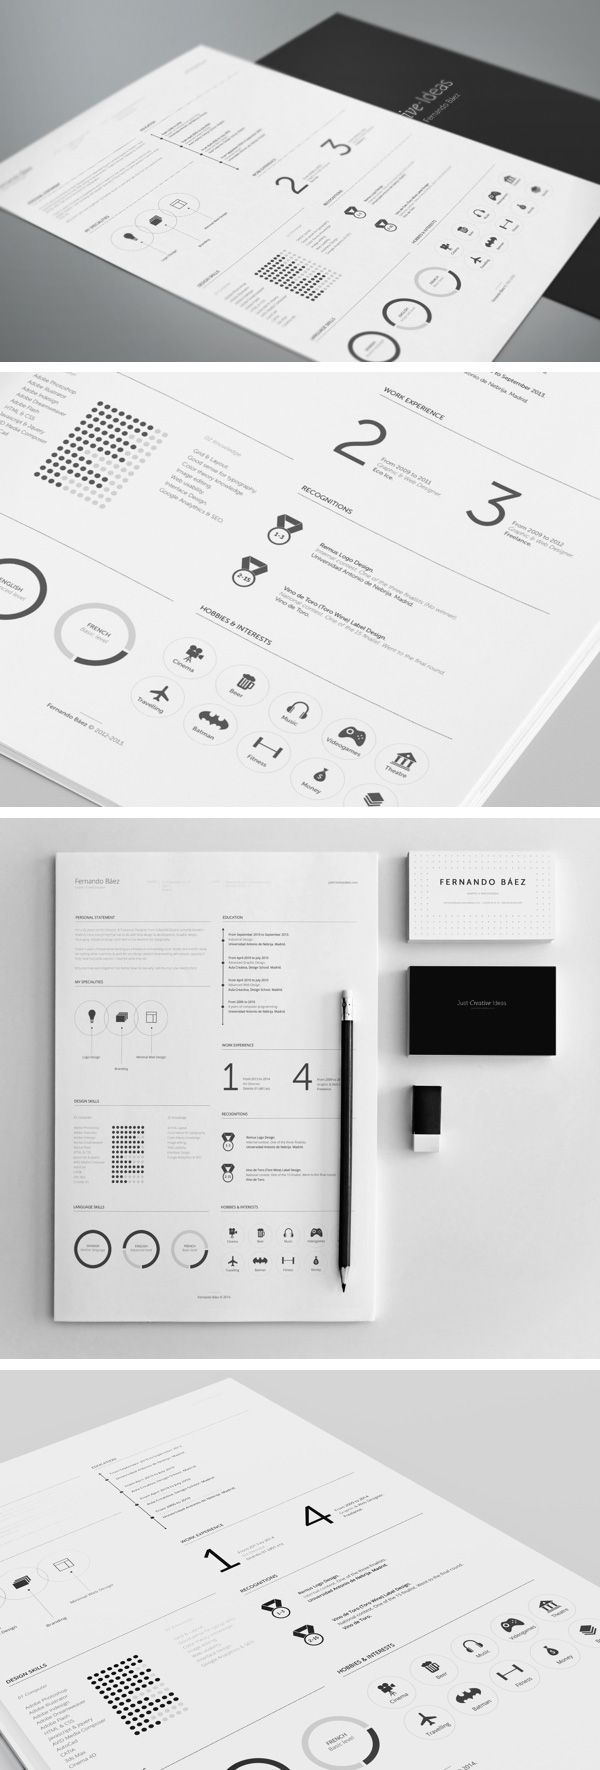 A free vector resume template that is very fit for designer and